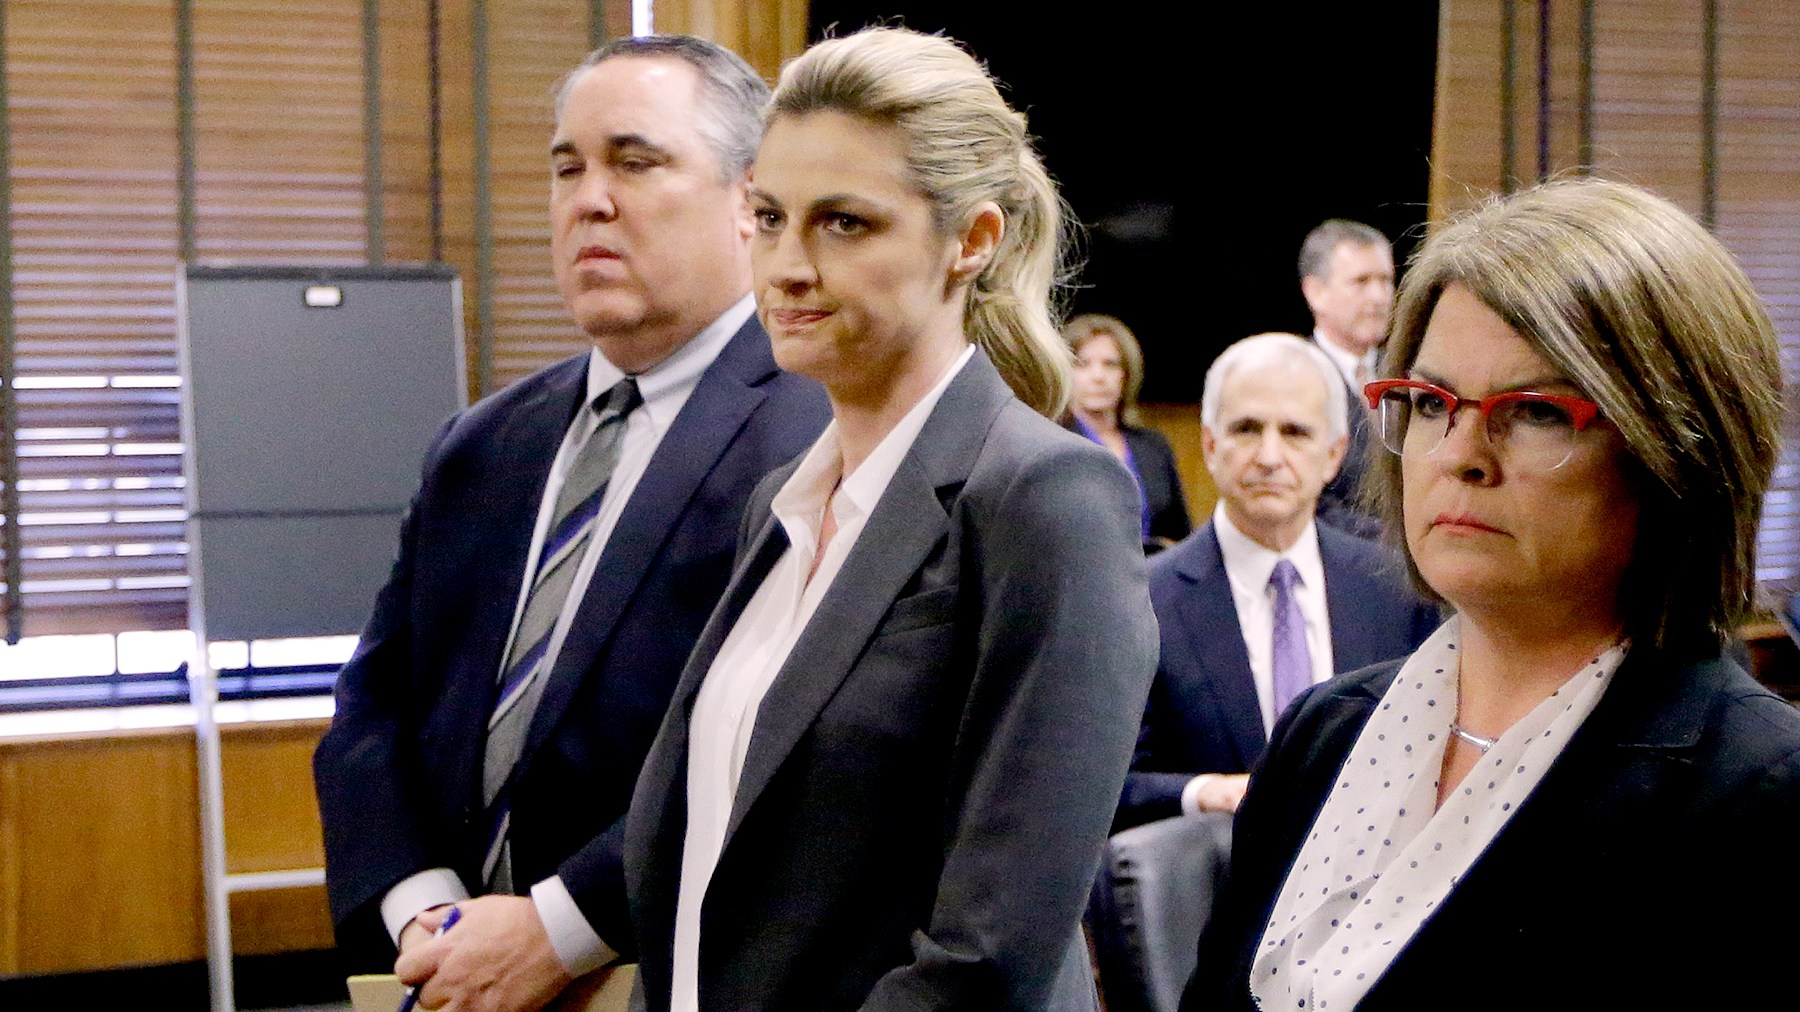 Erin Andrews stands with attorney Scott Carr, second from left, as the jury arrives in the courtroom after reaching a verdict Monday, March 7, 2016, in Nashville, Tenn.